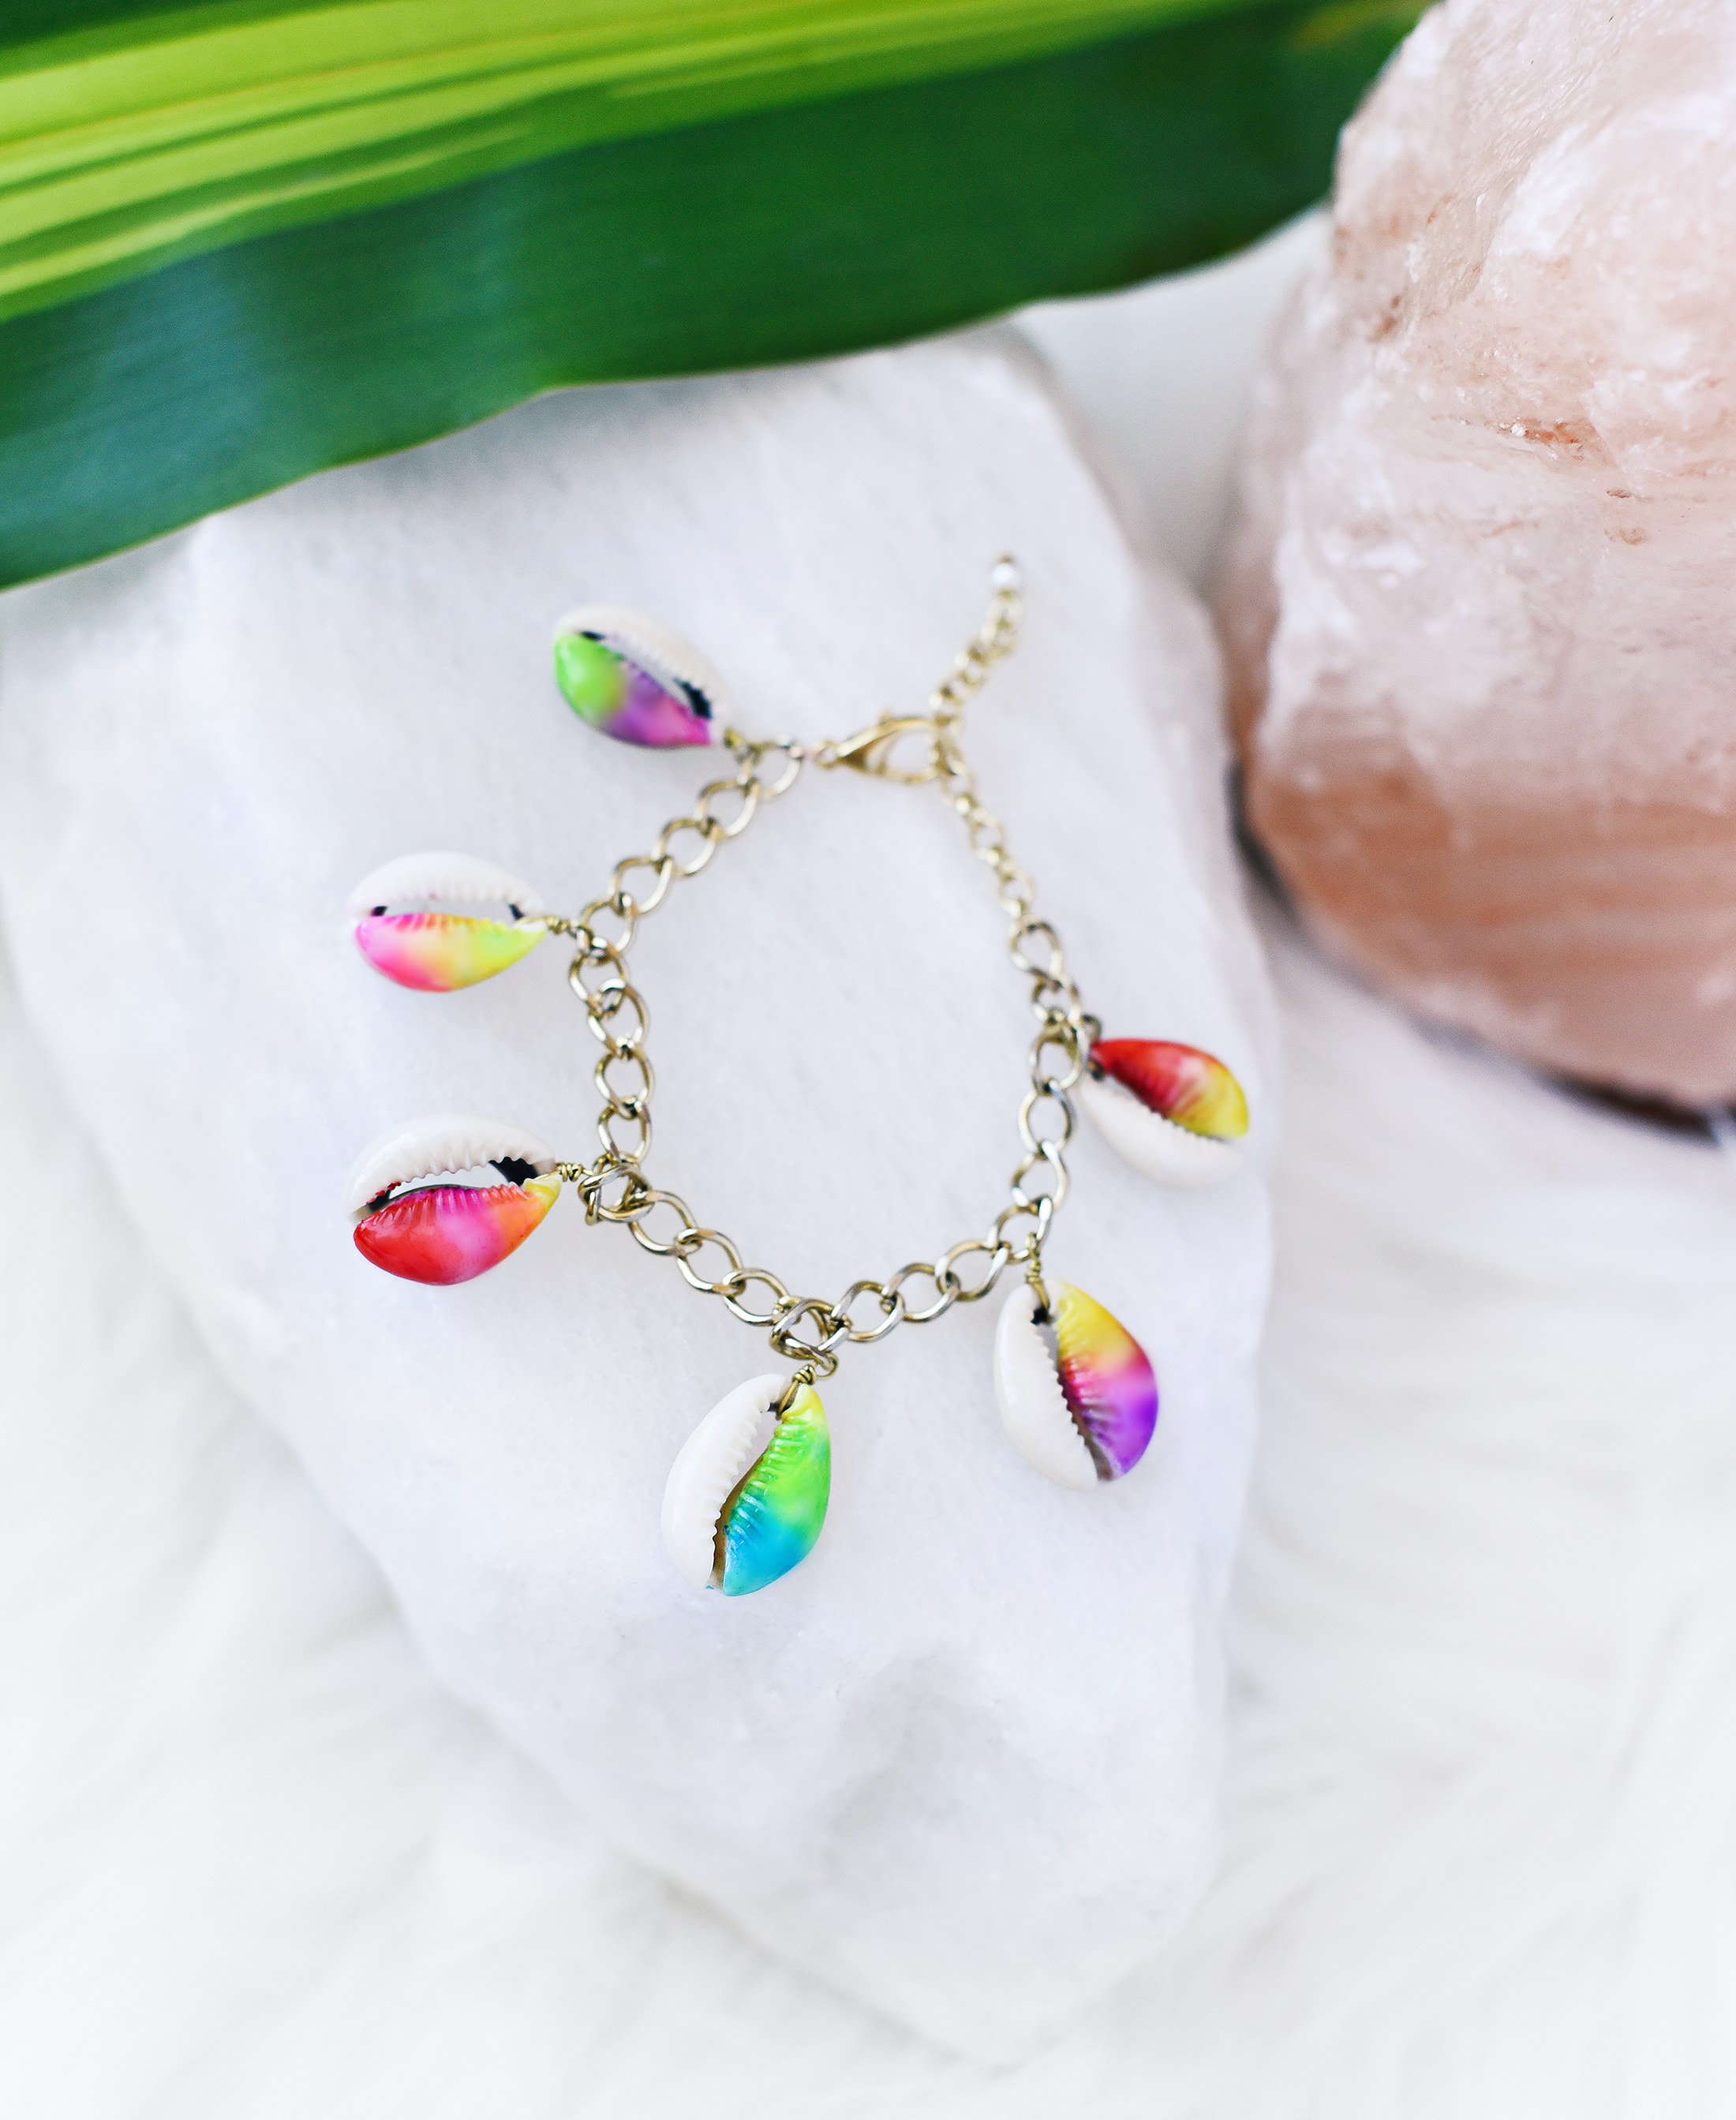 Tie Dye Shell Jewelry by Quiet Lion Creations